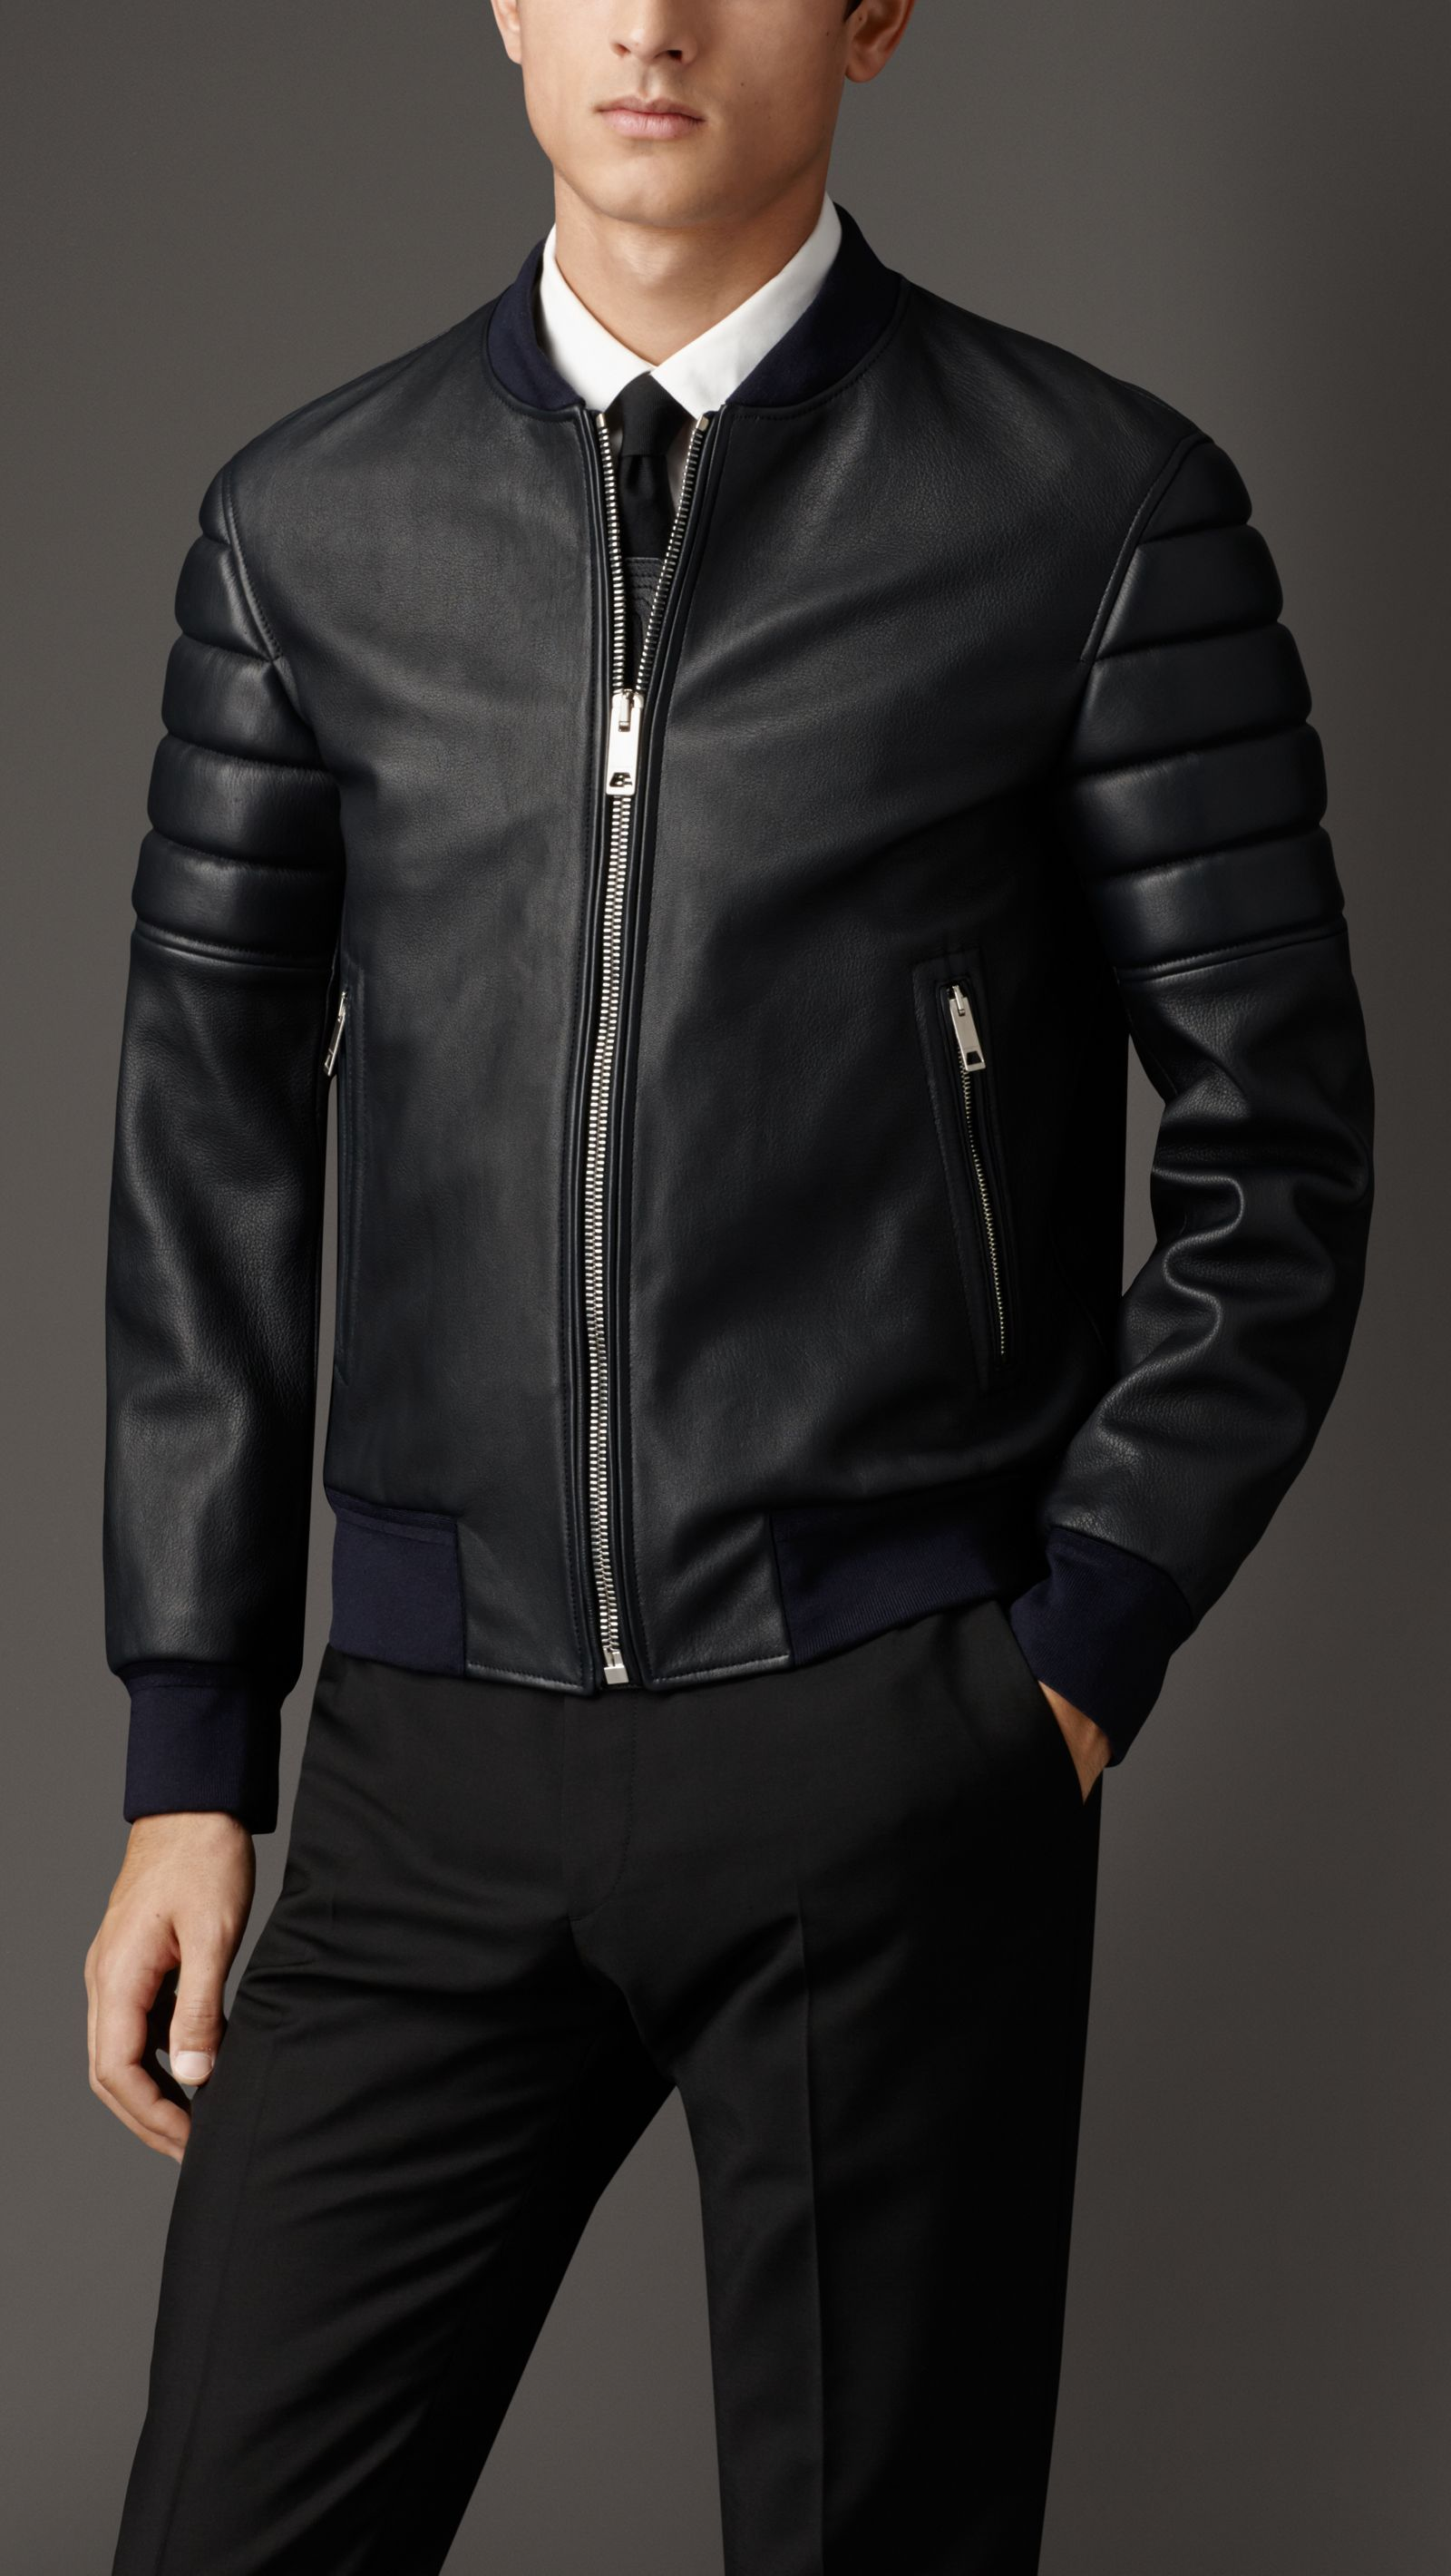 Men S Jackets Leather Bikers Bomber Quilted Burberry United Kingdom Leather Jacket Outfit Men Leather Fashion Men Jackets Men Fashion [ 2840 x 1600 Pixel ]